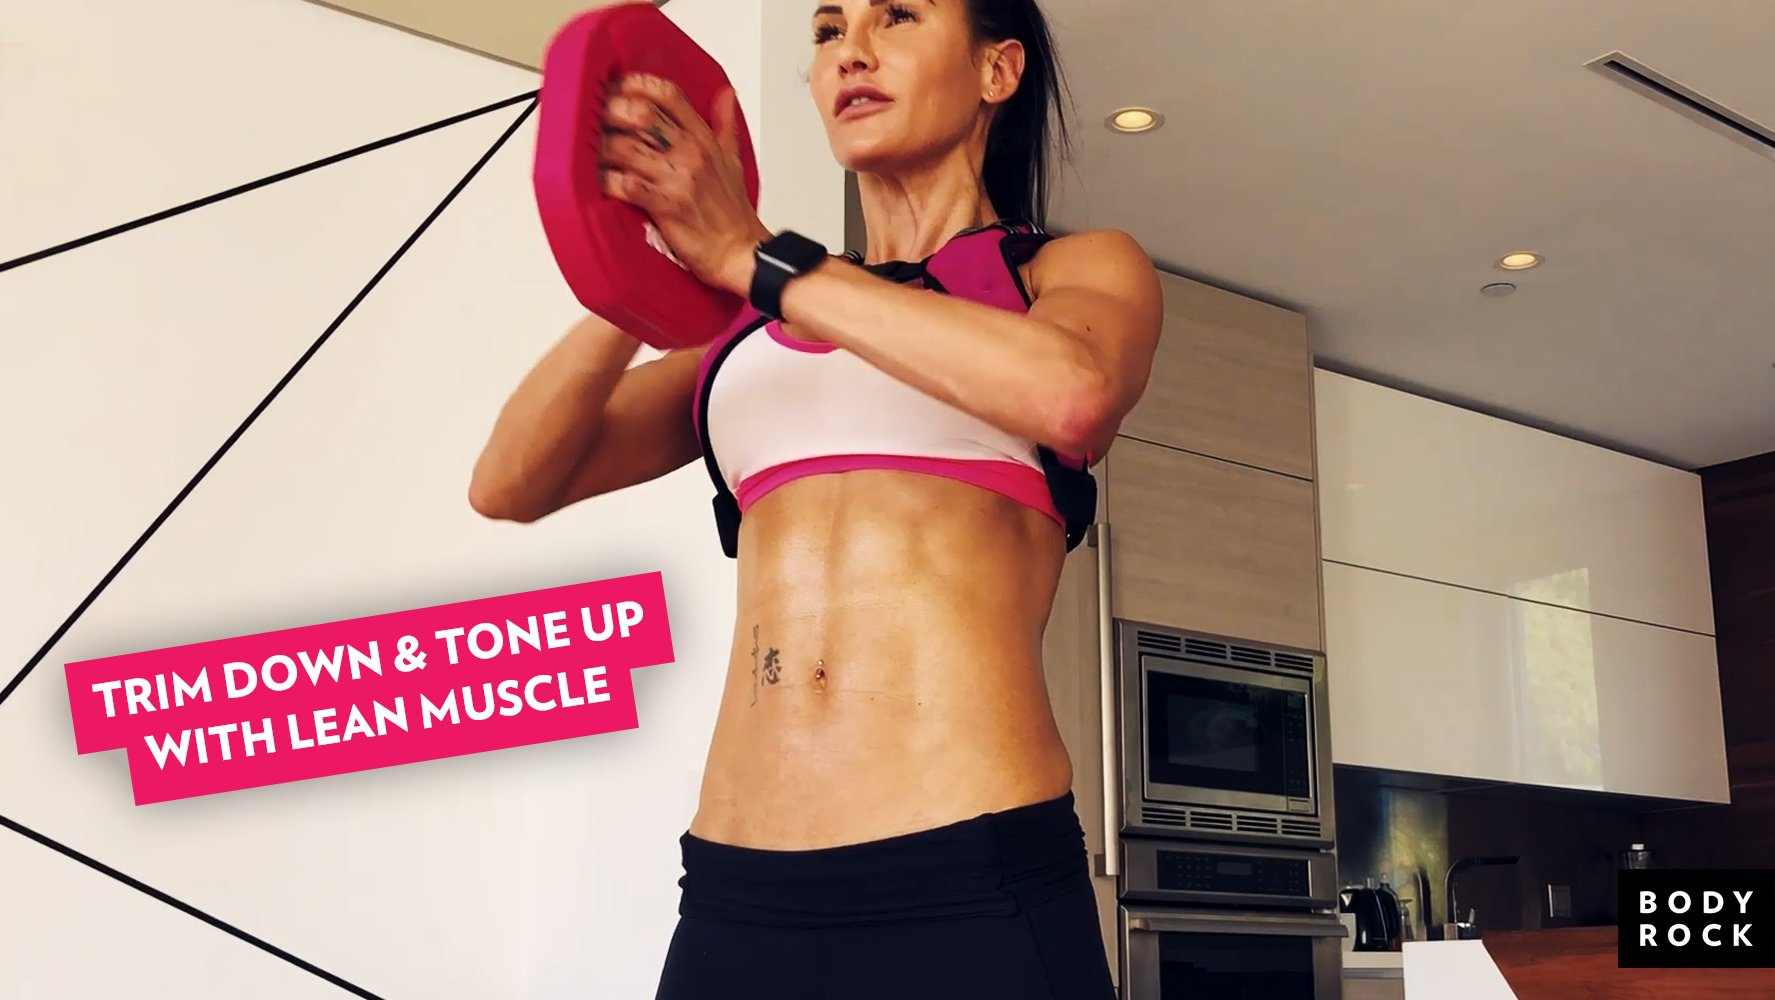 Trim Down And Tone Up With Lean Muscle